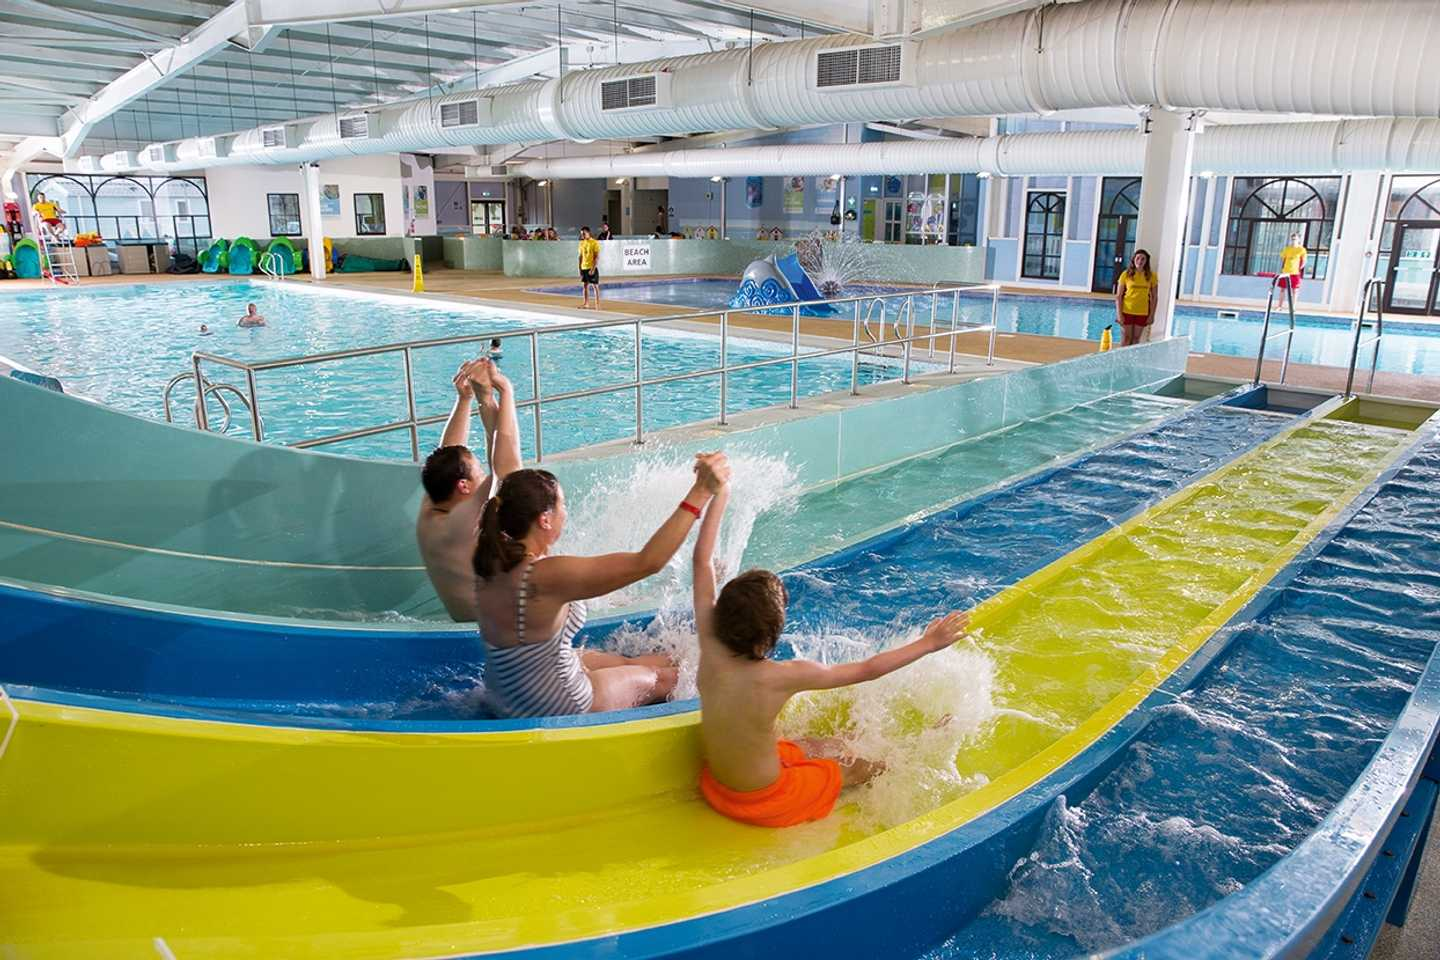 Have a splashing time at Haven